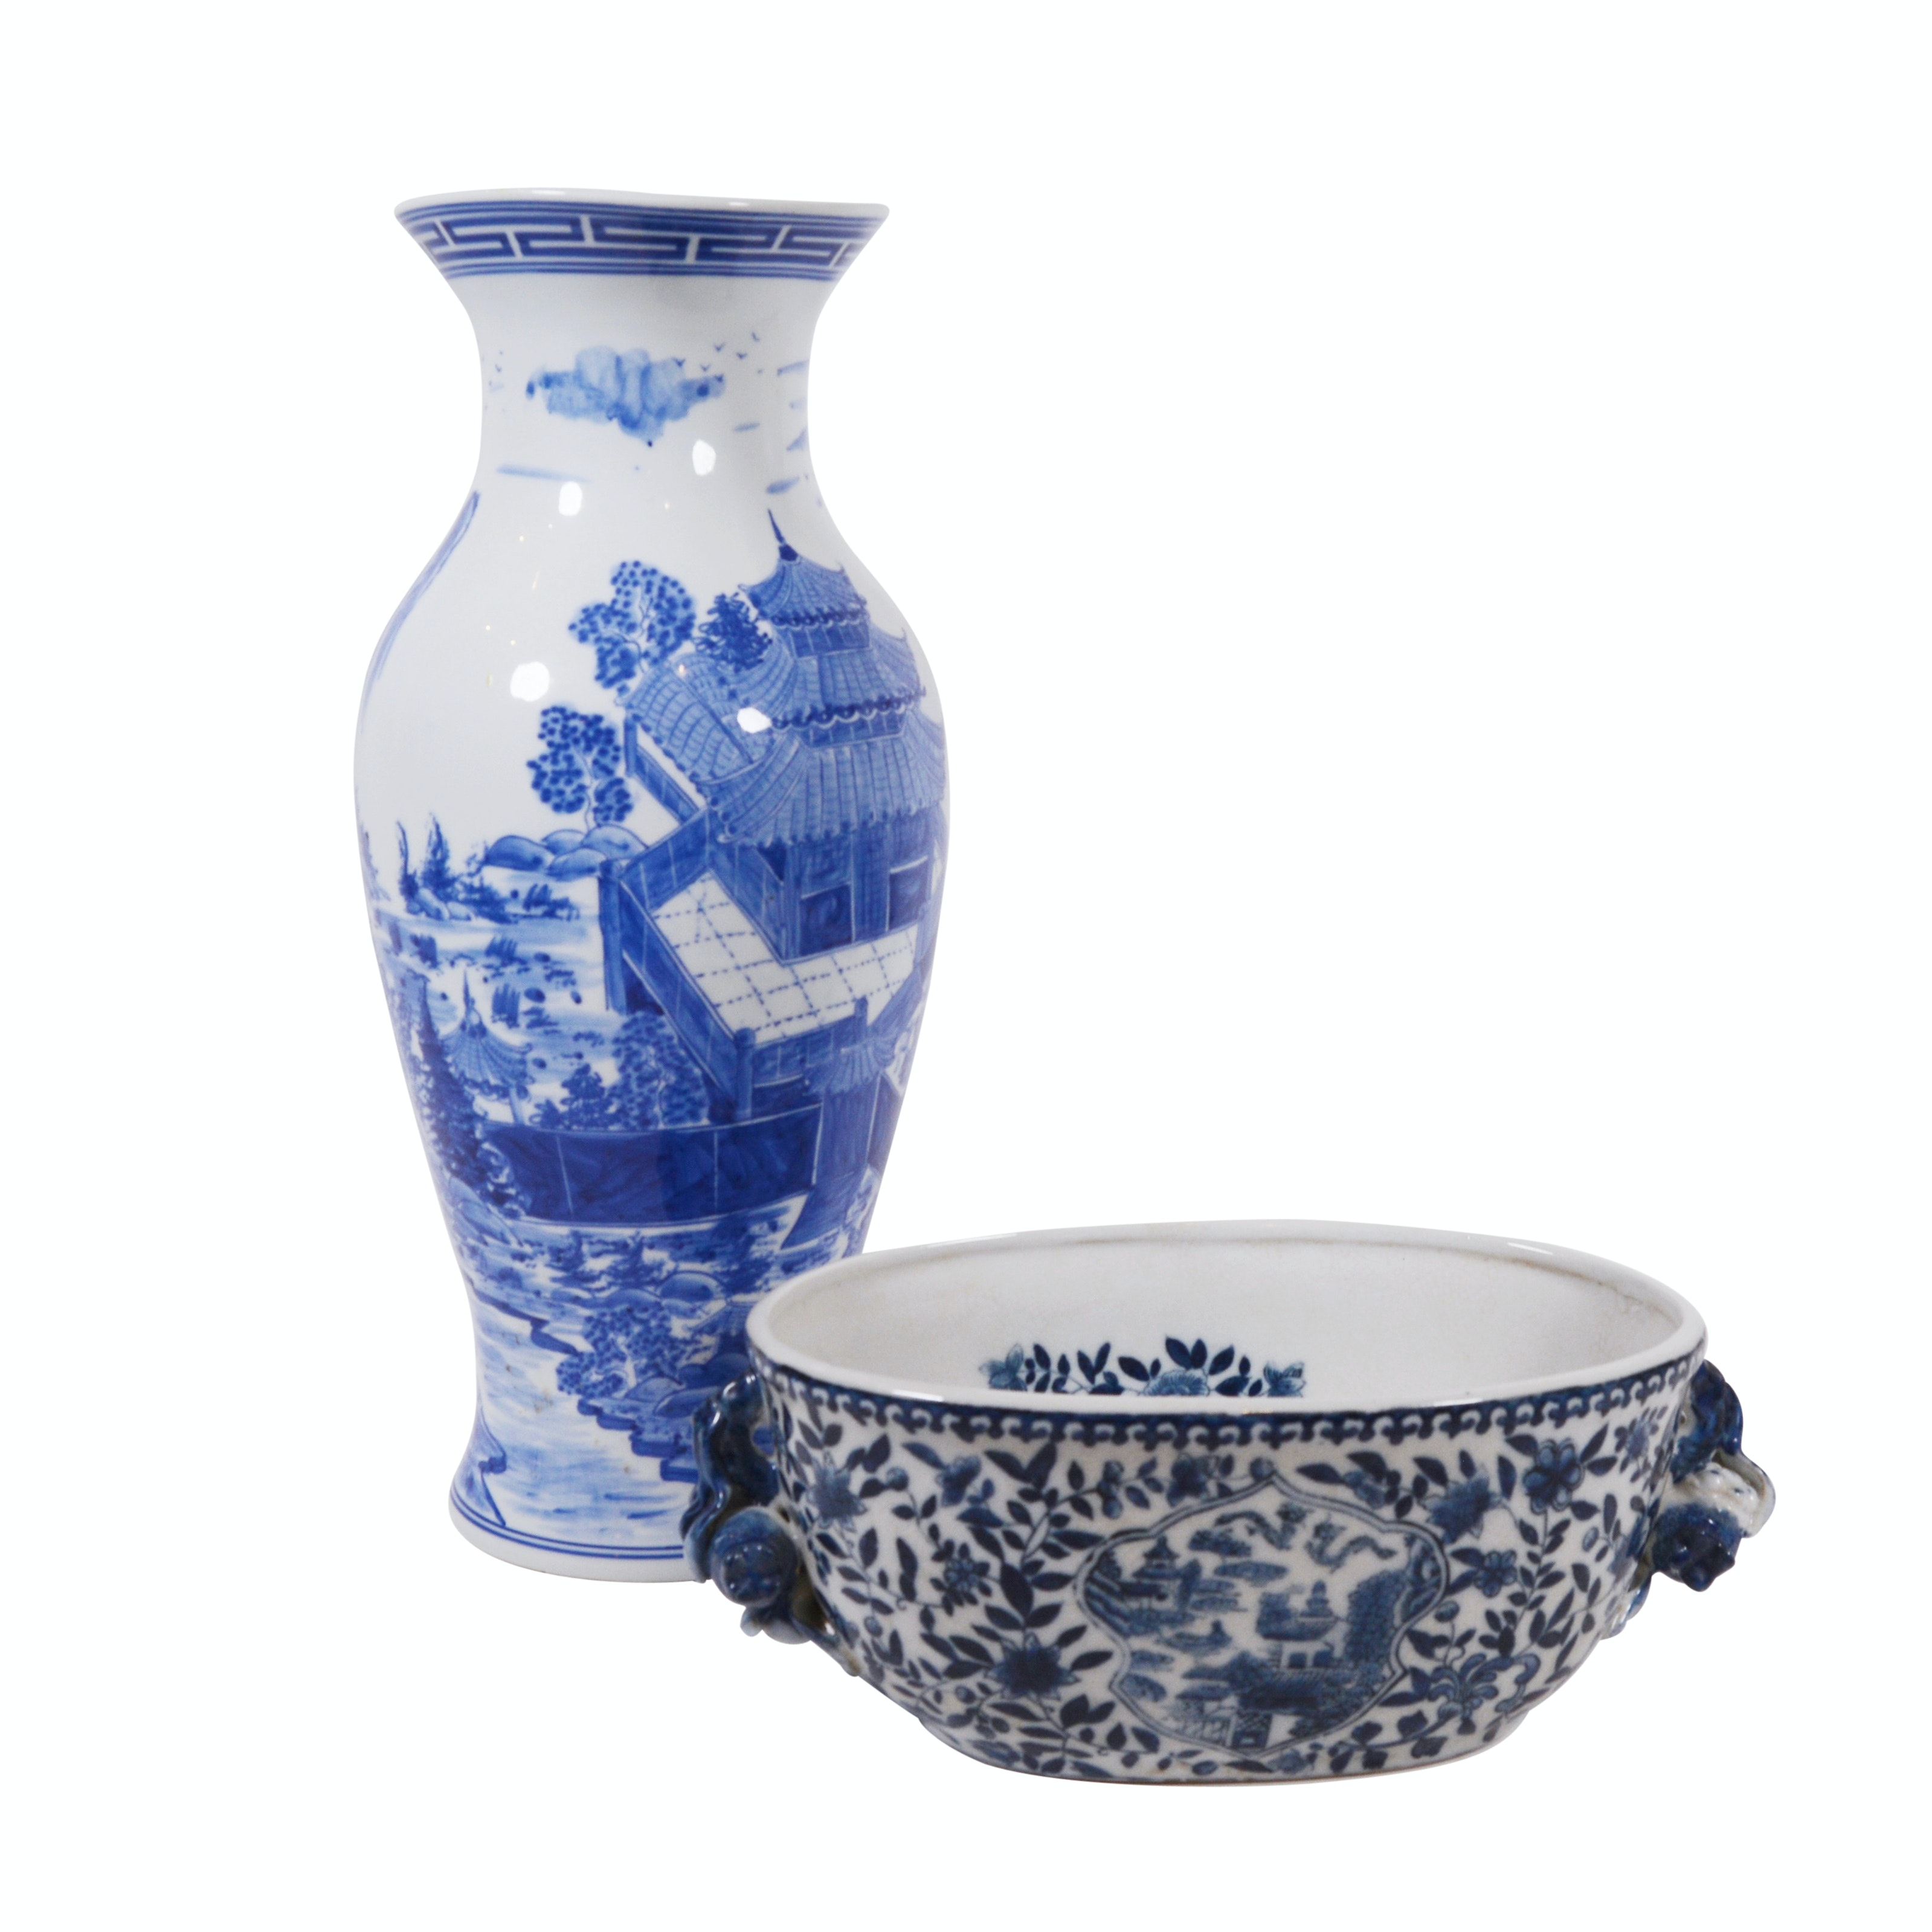 Chinese Inspired Blue and White Porcelain Vase and Jardinere